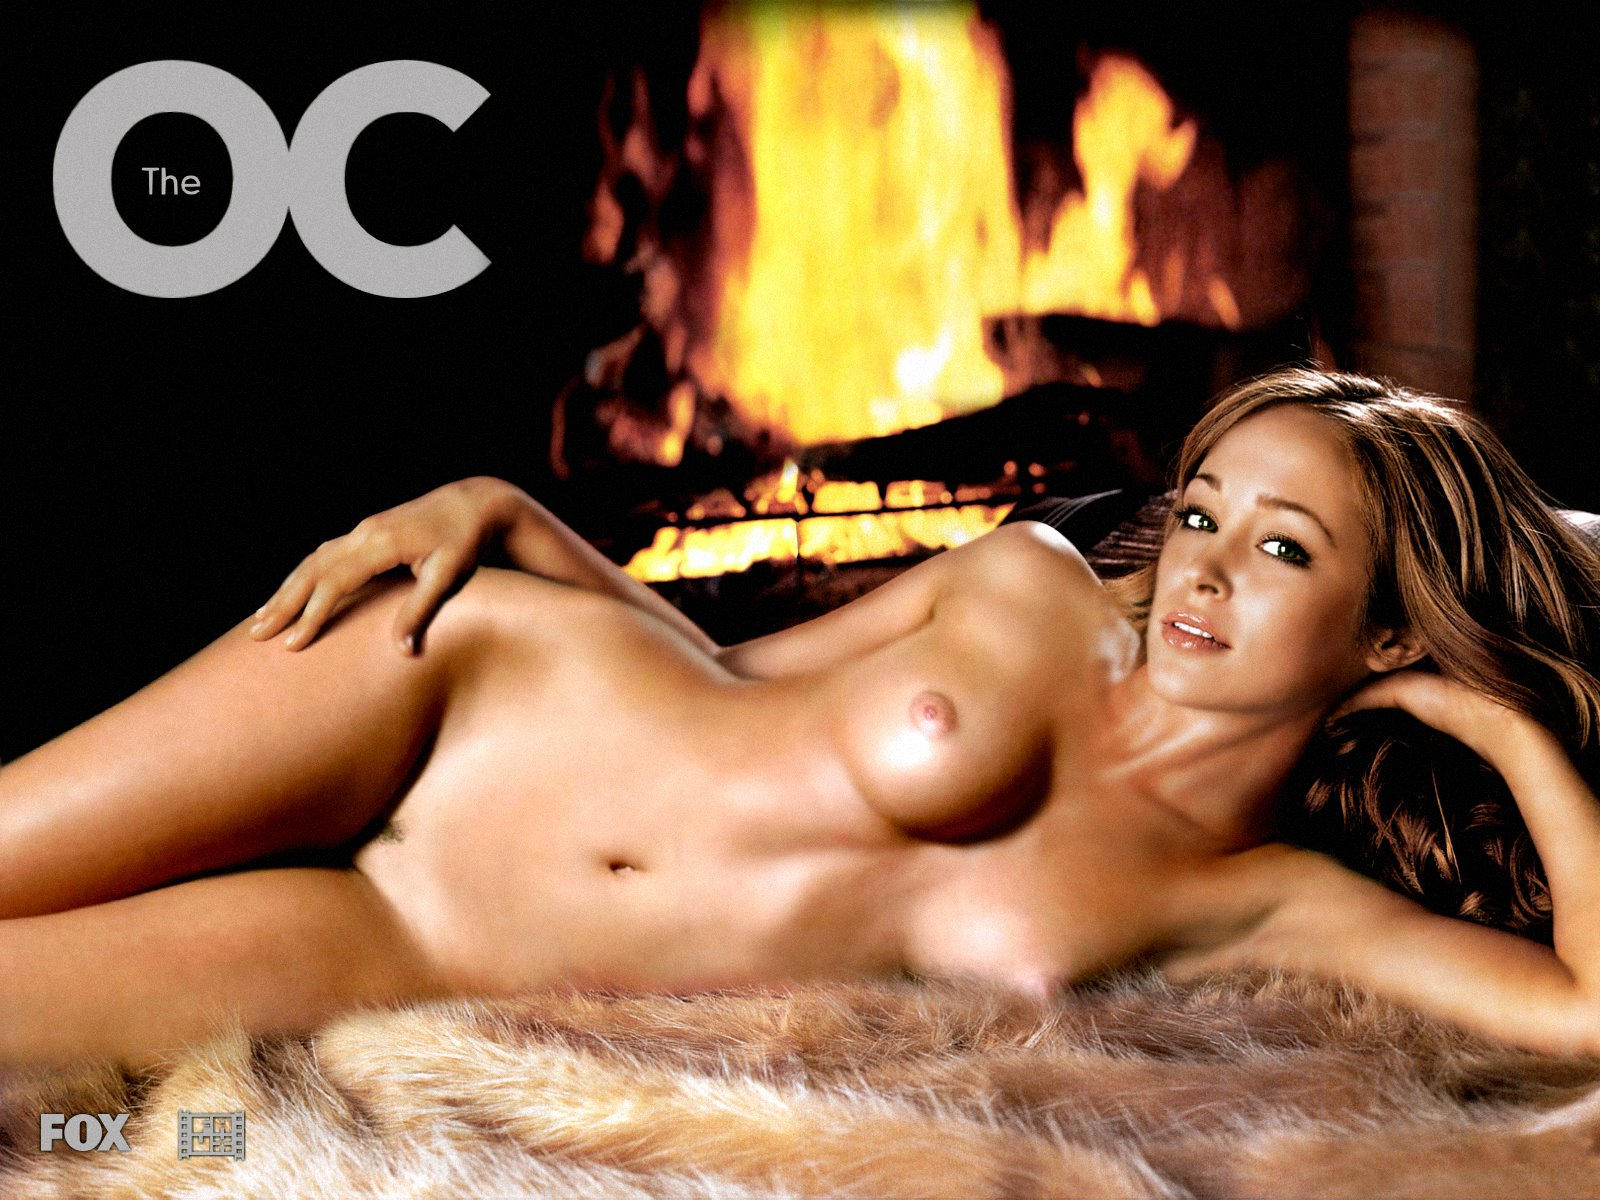 The real housewives of the oc fakes nude cross con donne